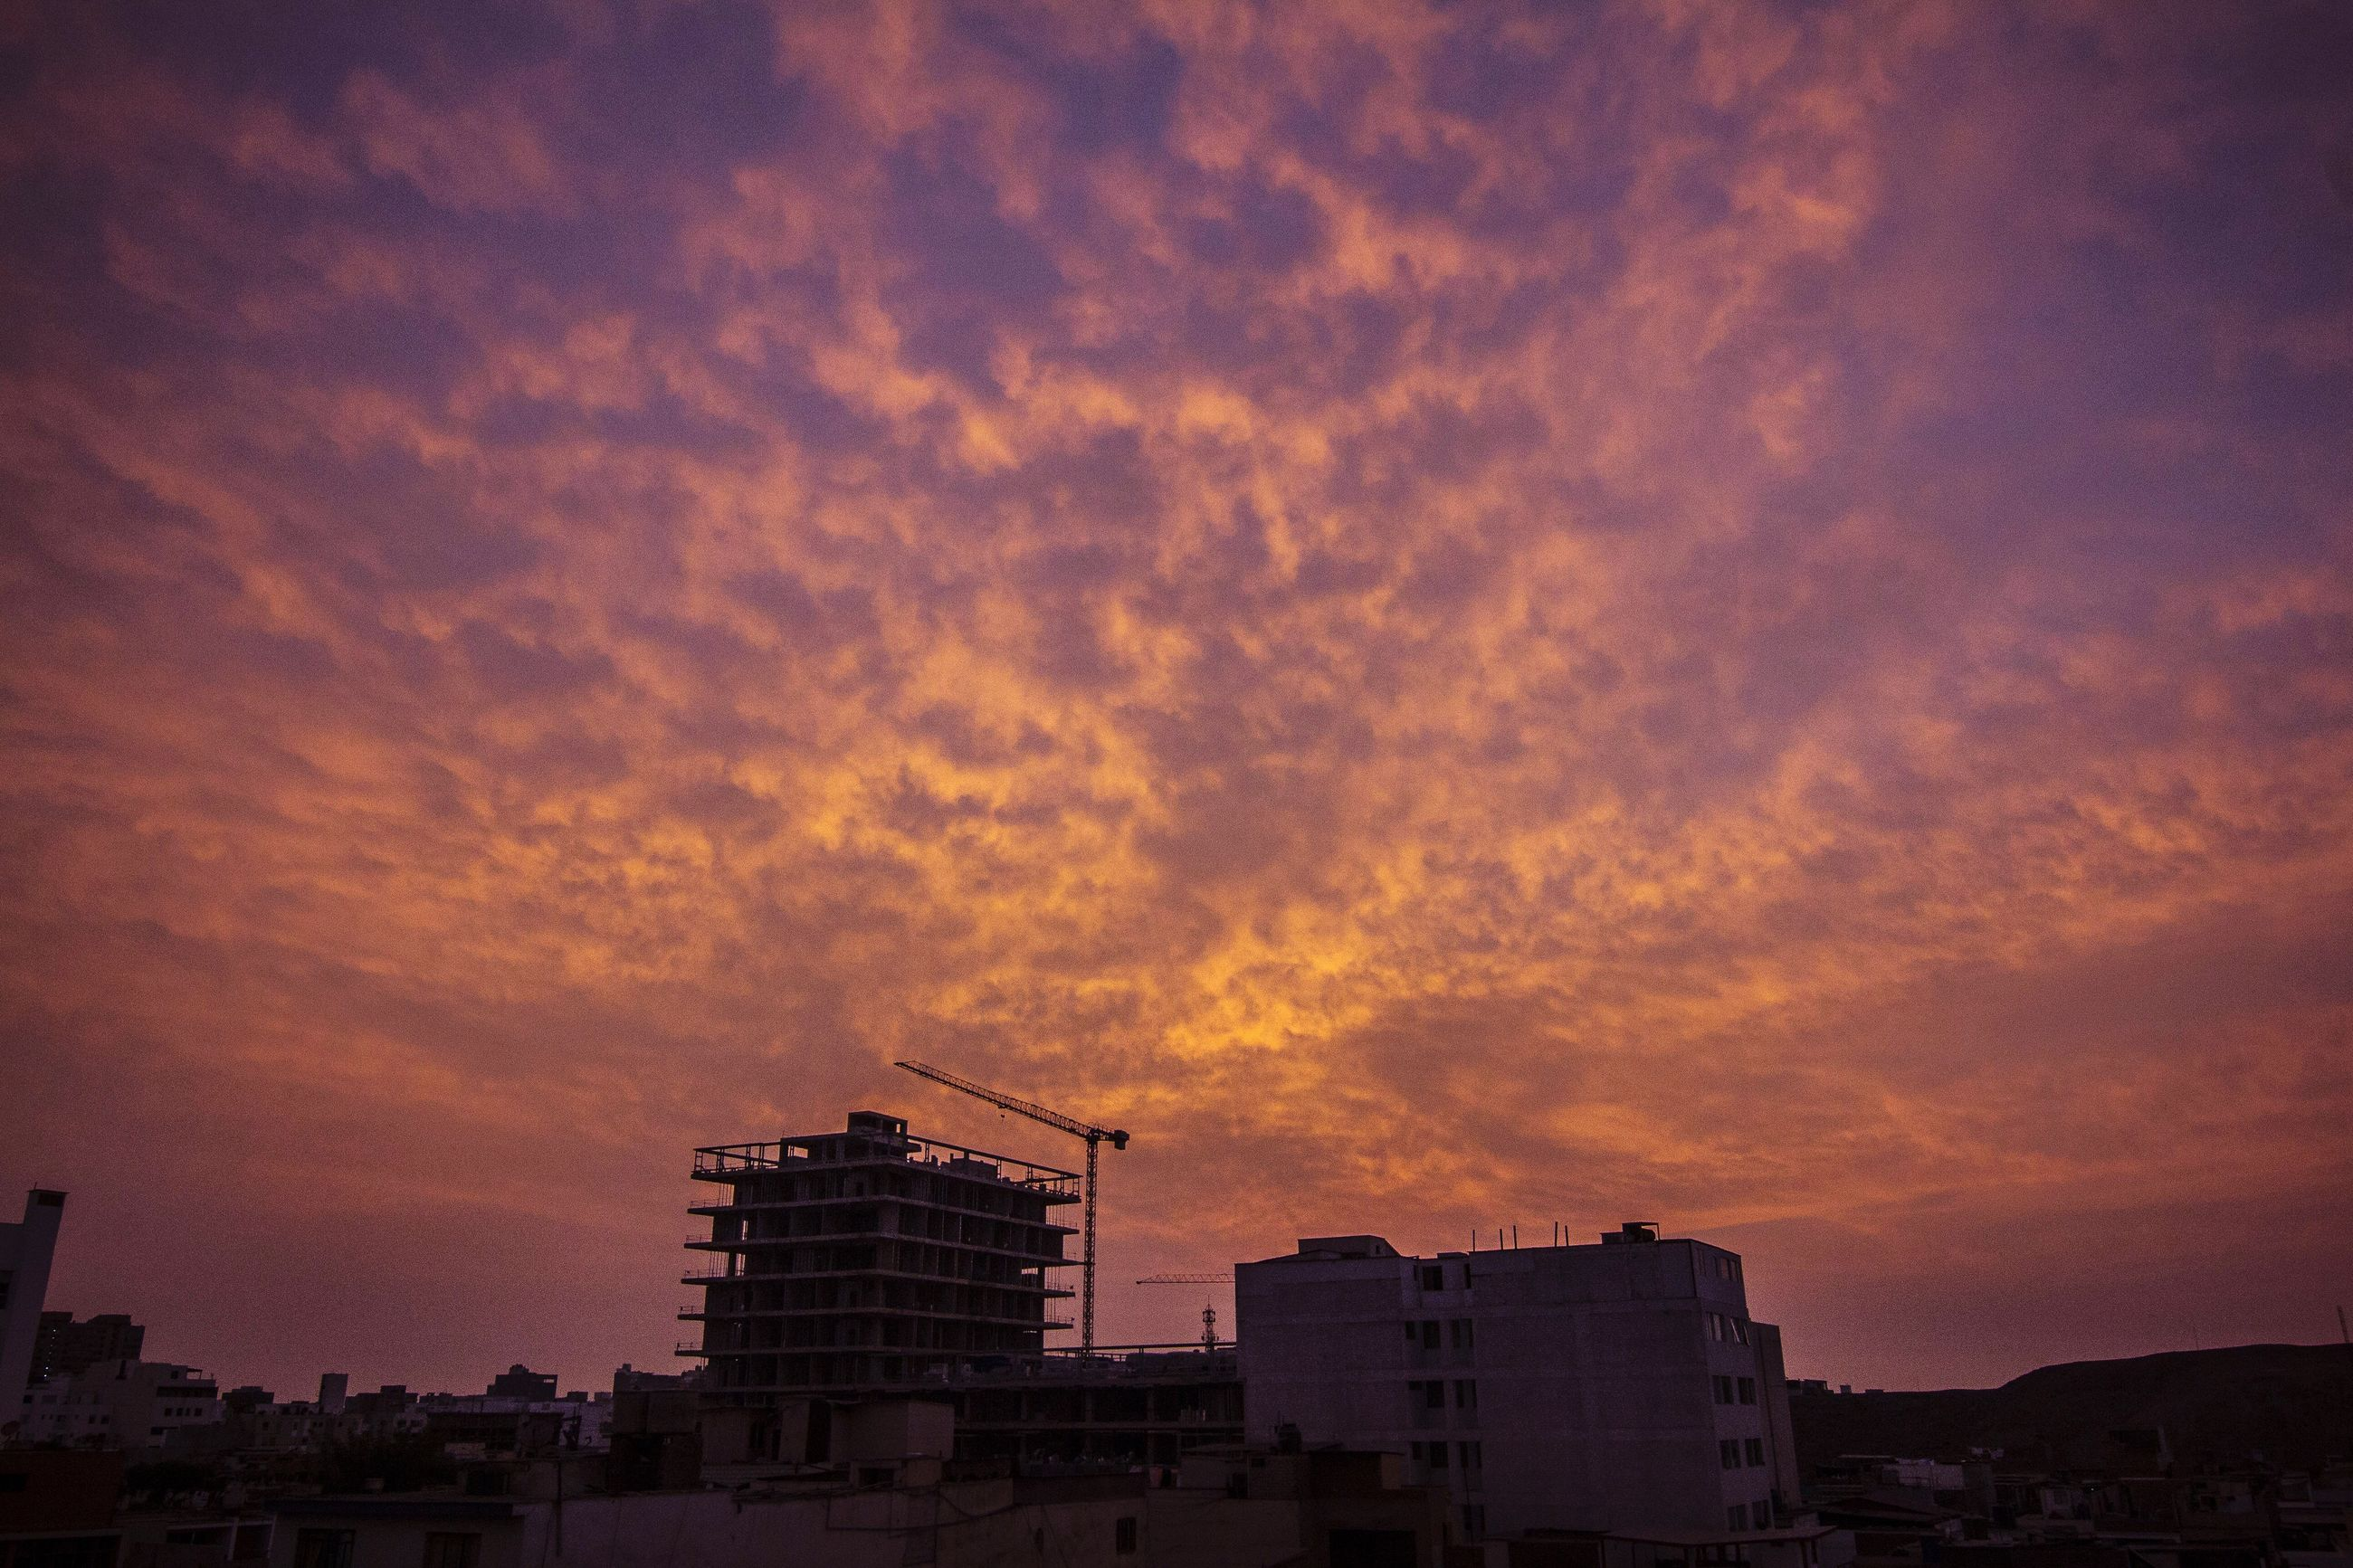 sunset, building exterior, architecture, built structure, sky, silhouette, cloud - sky, orange color, low angle view, cloudy, dramatic sky, building, weather, overcast, dusk, cloud, city, outdoors, nature, residential structure